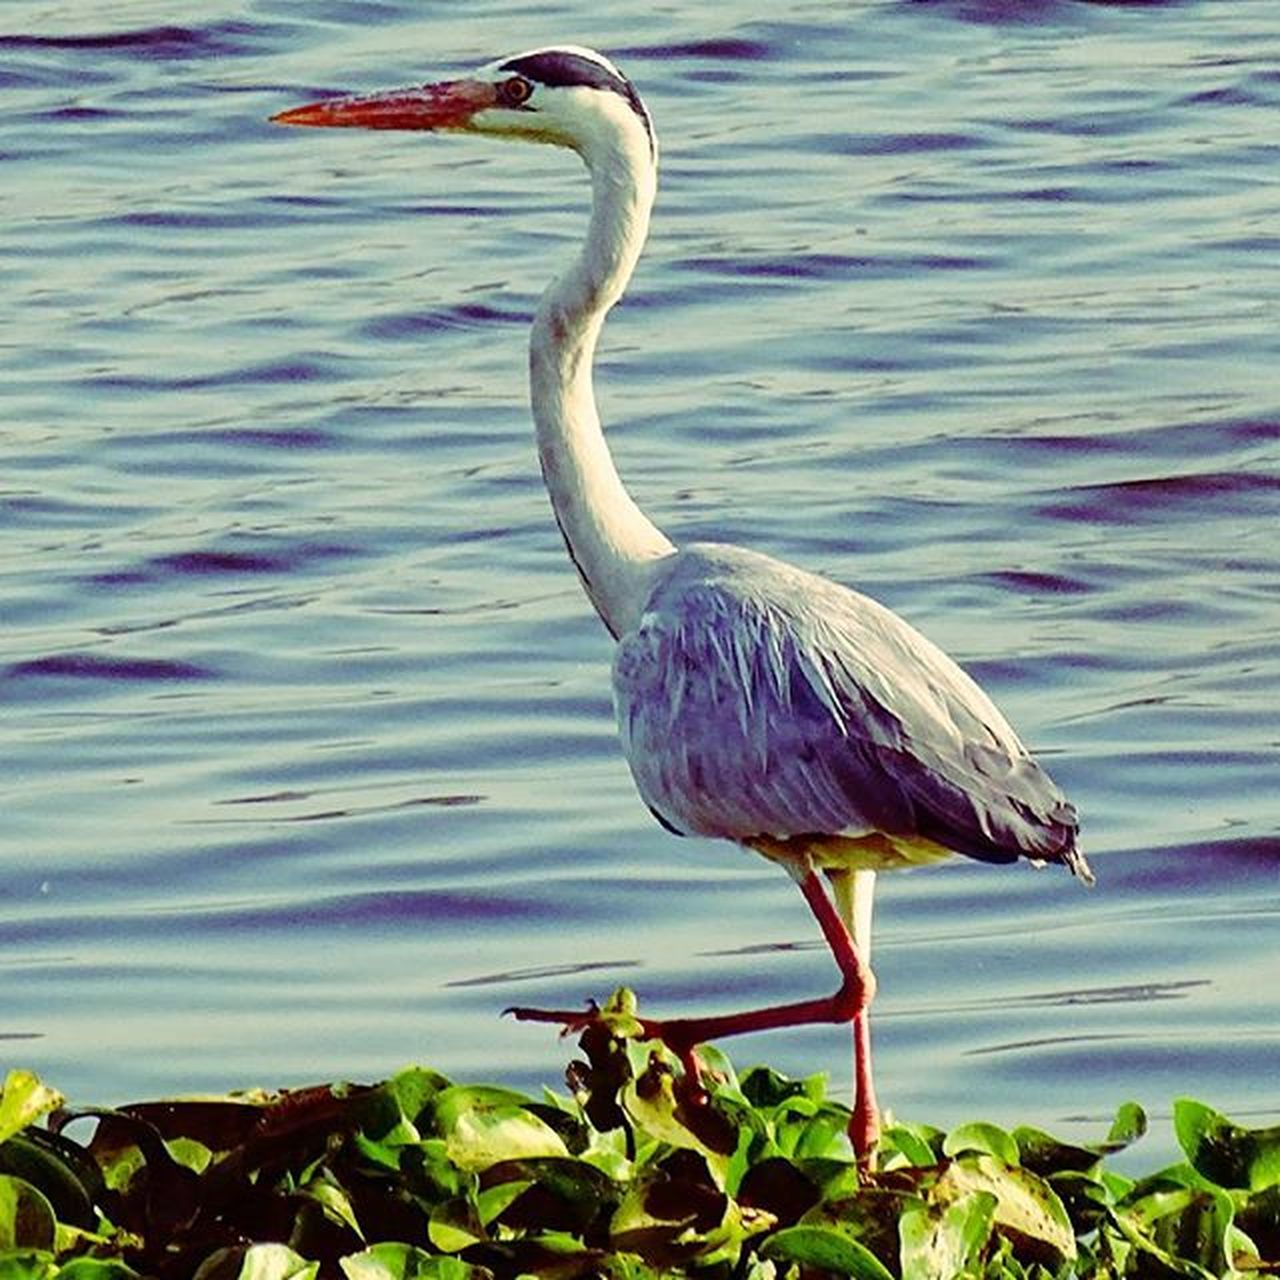 A grey heron taking a stroll .. Birdsforsure Your_best_bird Wildlife_perfection Nature_shooters Nature Nature_perfection Nature_creature_feature Nature Photography Visual_authority Igs_asia Pune_instagrammers Puneshades Pune_weekenders Ngma India_clicks Natureporn Nature Lovers